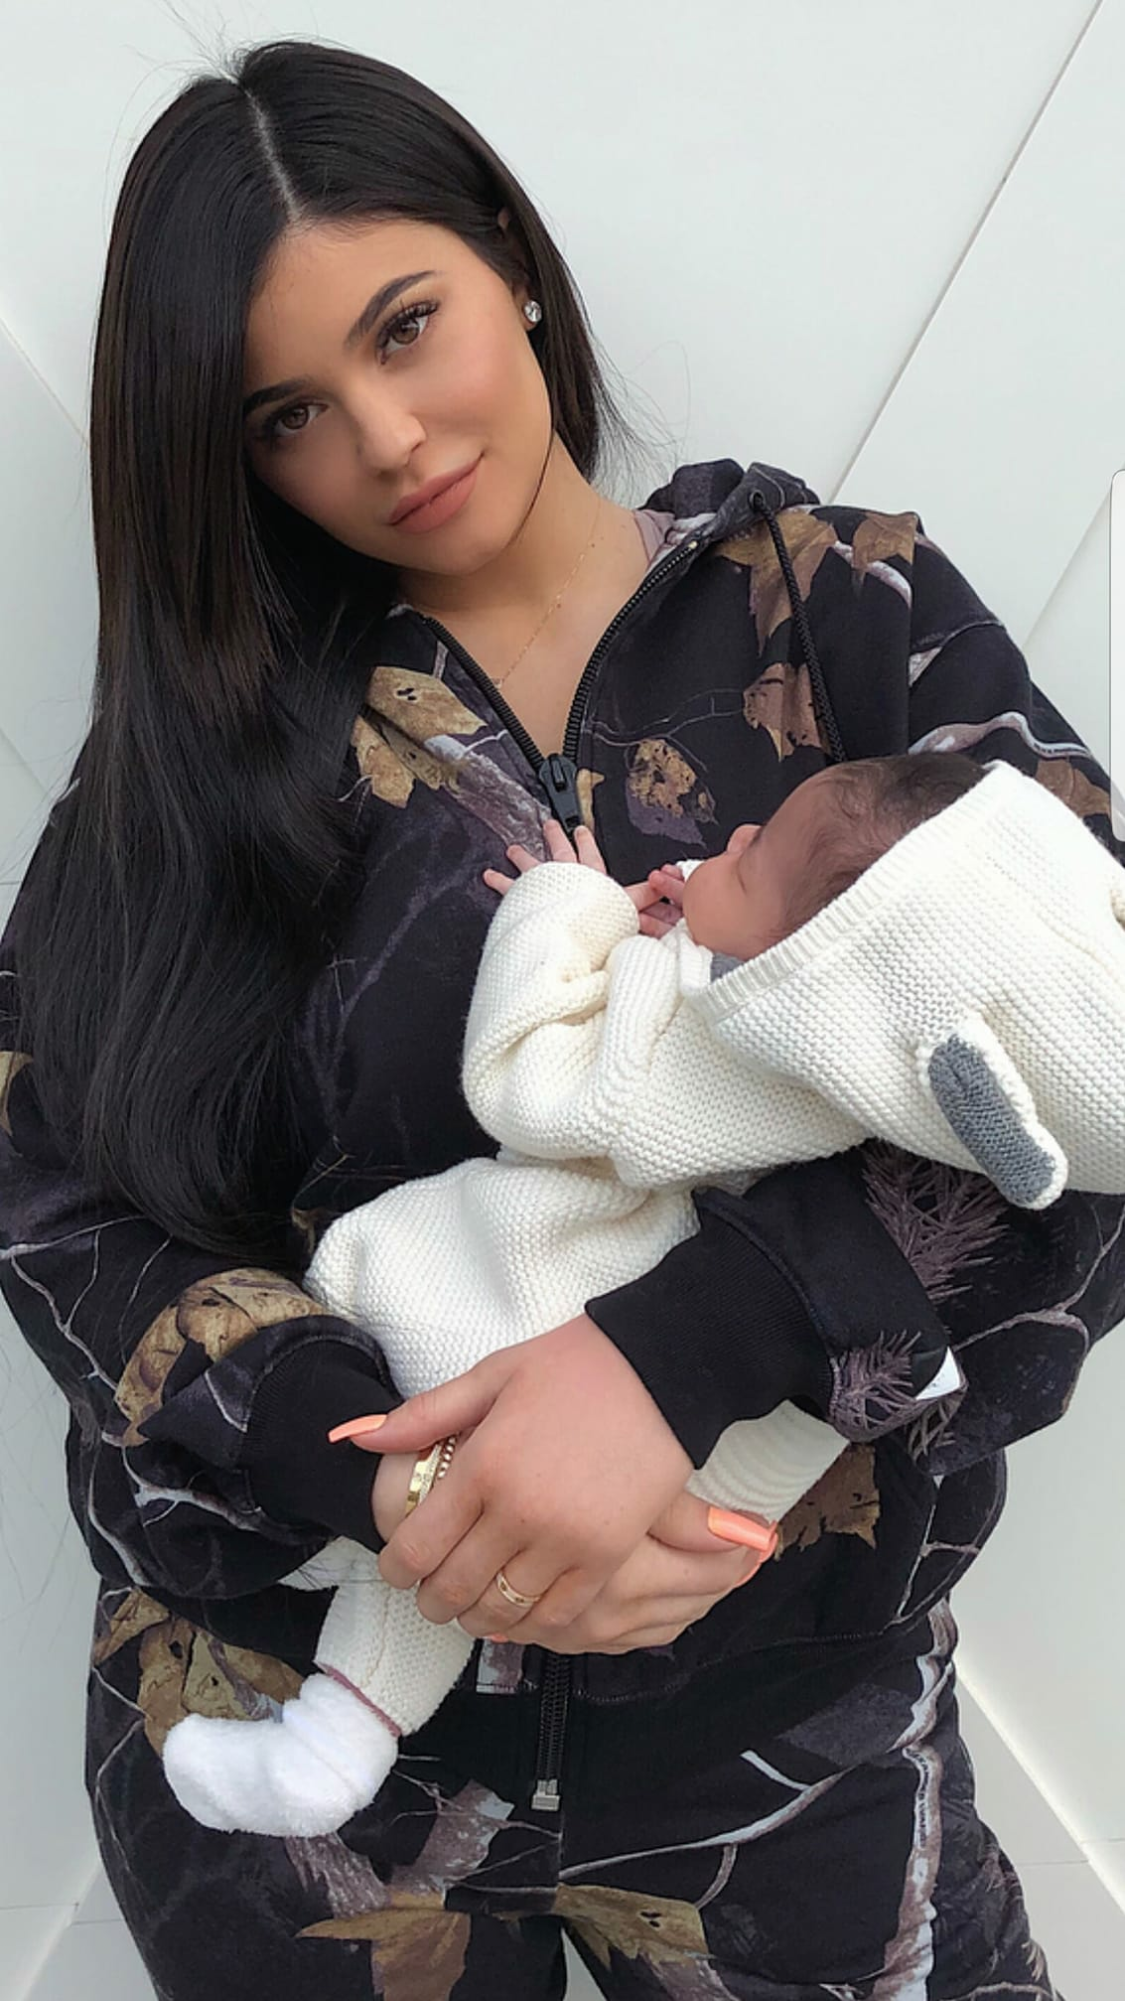 Kylie Jenner Baby Stormi Webster With Images Kylie Jenner Outfits Kylie Jenner Baby Kylie